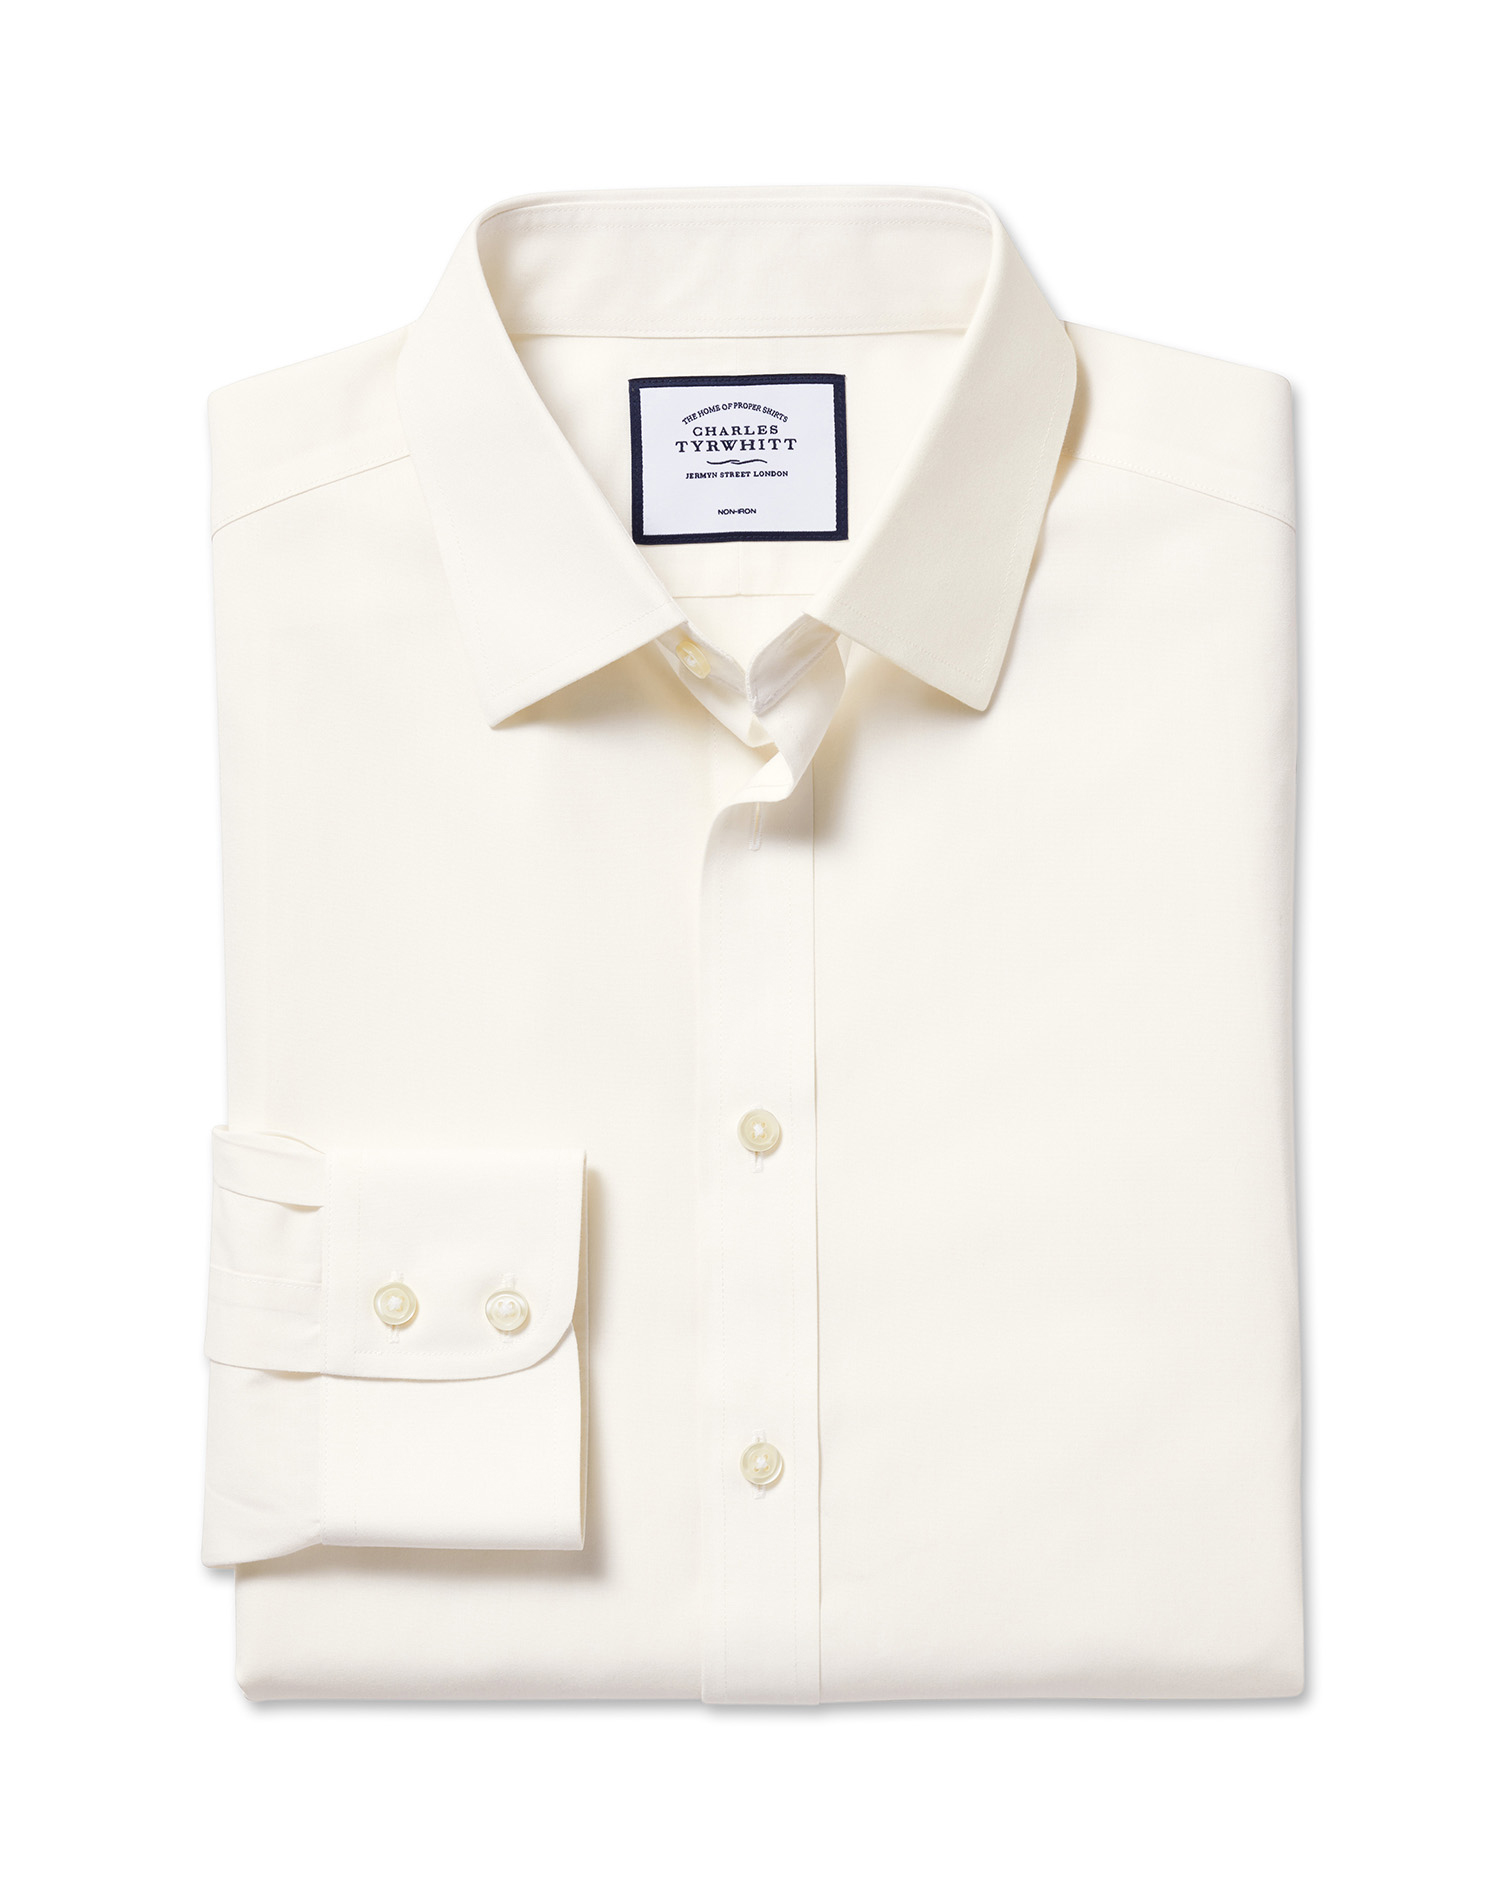 Slim Fit Non-Iron Poplin Cream Cotton Formal Shirt Single Cuff Size 16/35 by Charles Tyrwhitt